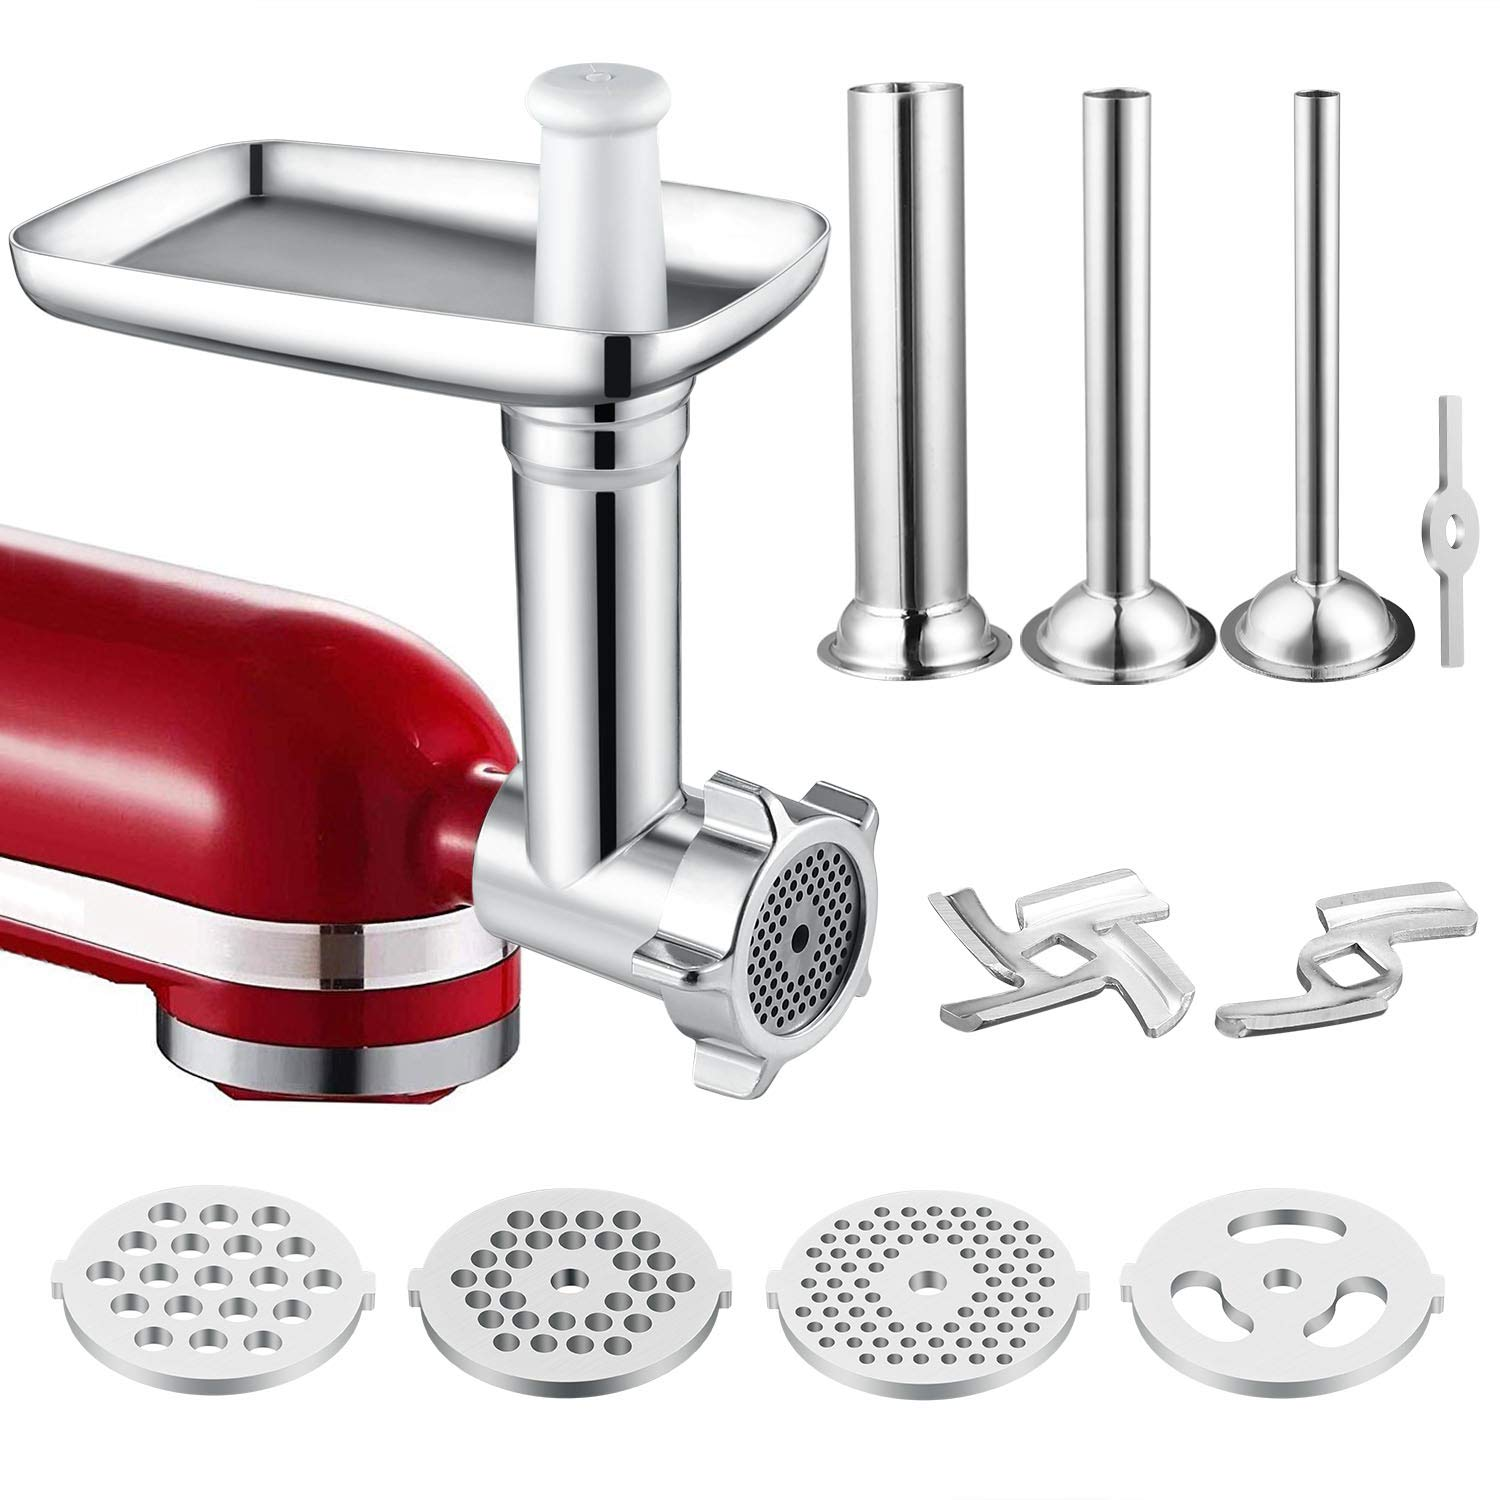 Food Meat Grinder Attachment Compatible for KitchenAid Stand Mixers Included Sausage Stuffer/Grinding Plates/Grinding Blade Accessory by iVict